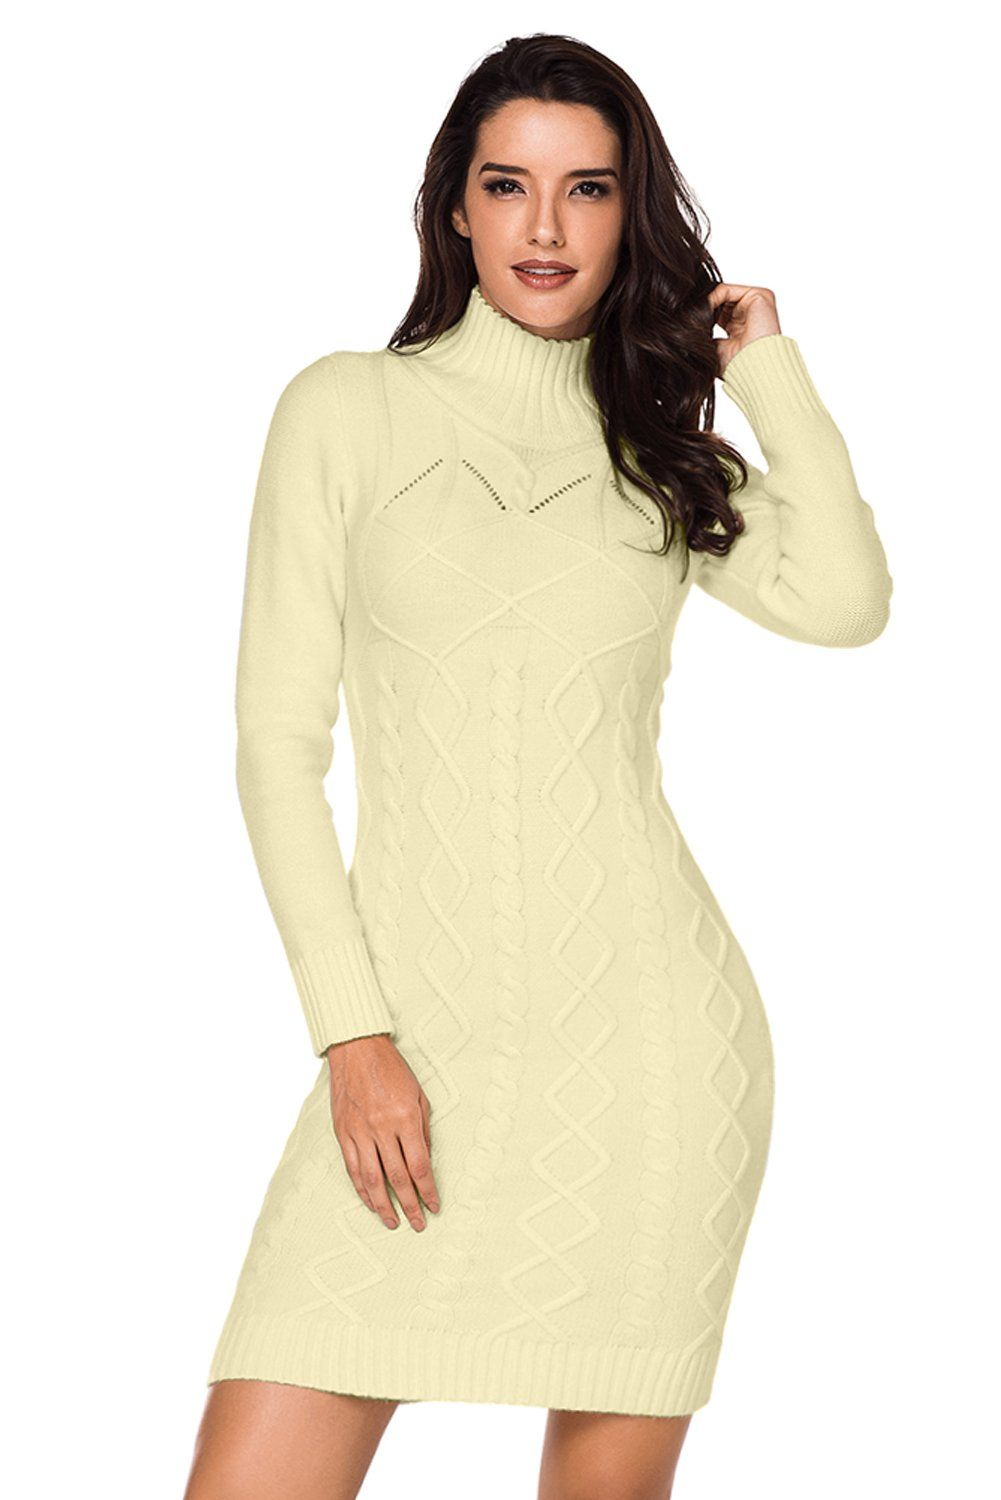 4b8511fc899 Robe Pull Femme Tricot de Cable Abricot Col Roule Pas Cher www.modebuy.com